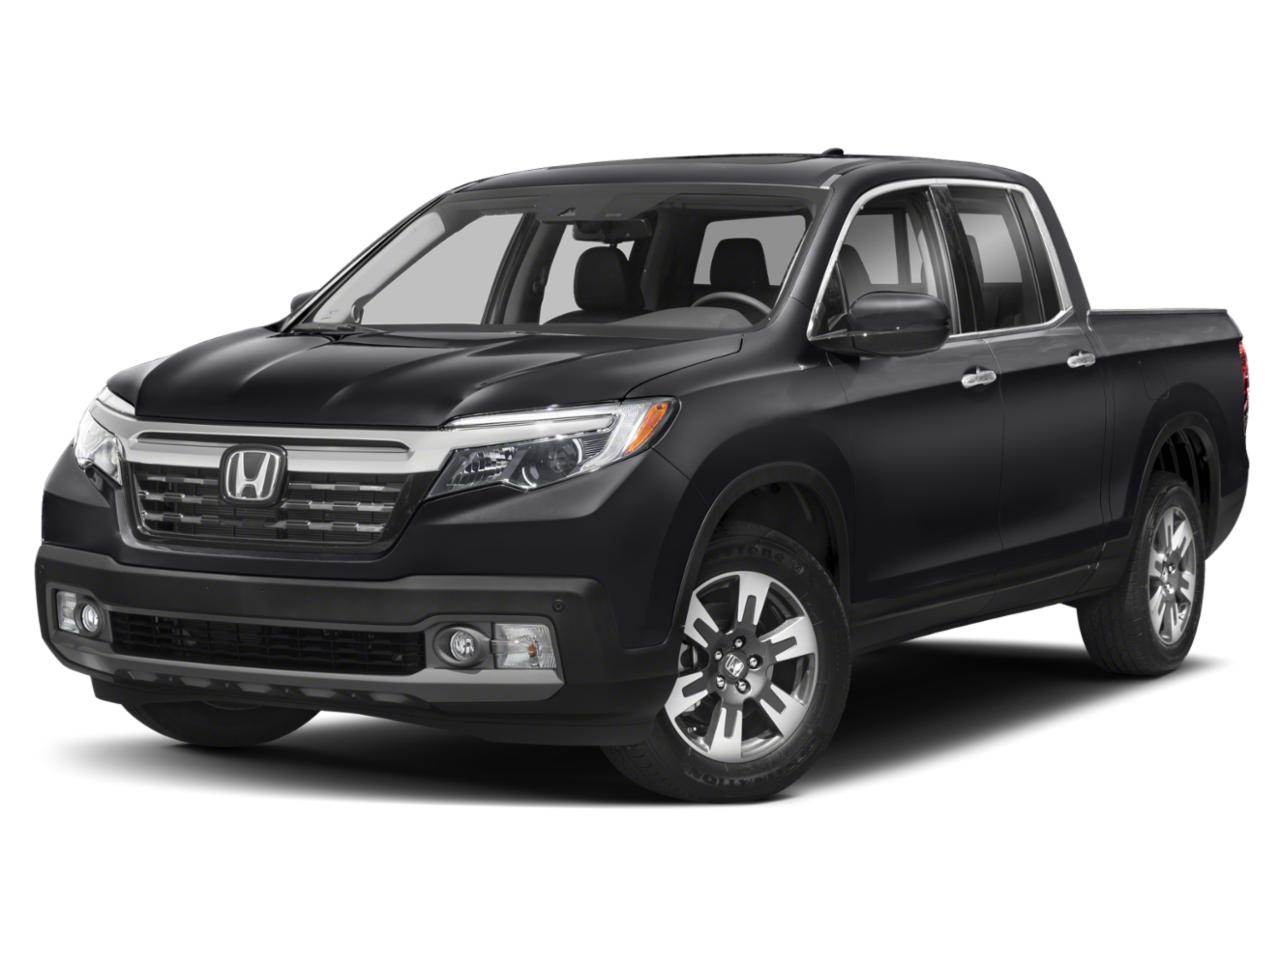 2019 Honda Ridgeline Vehicle Photo in San Antonio, TX 78238